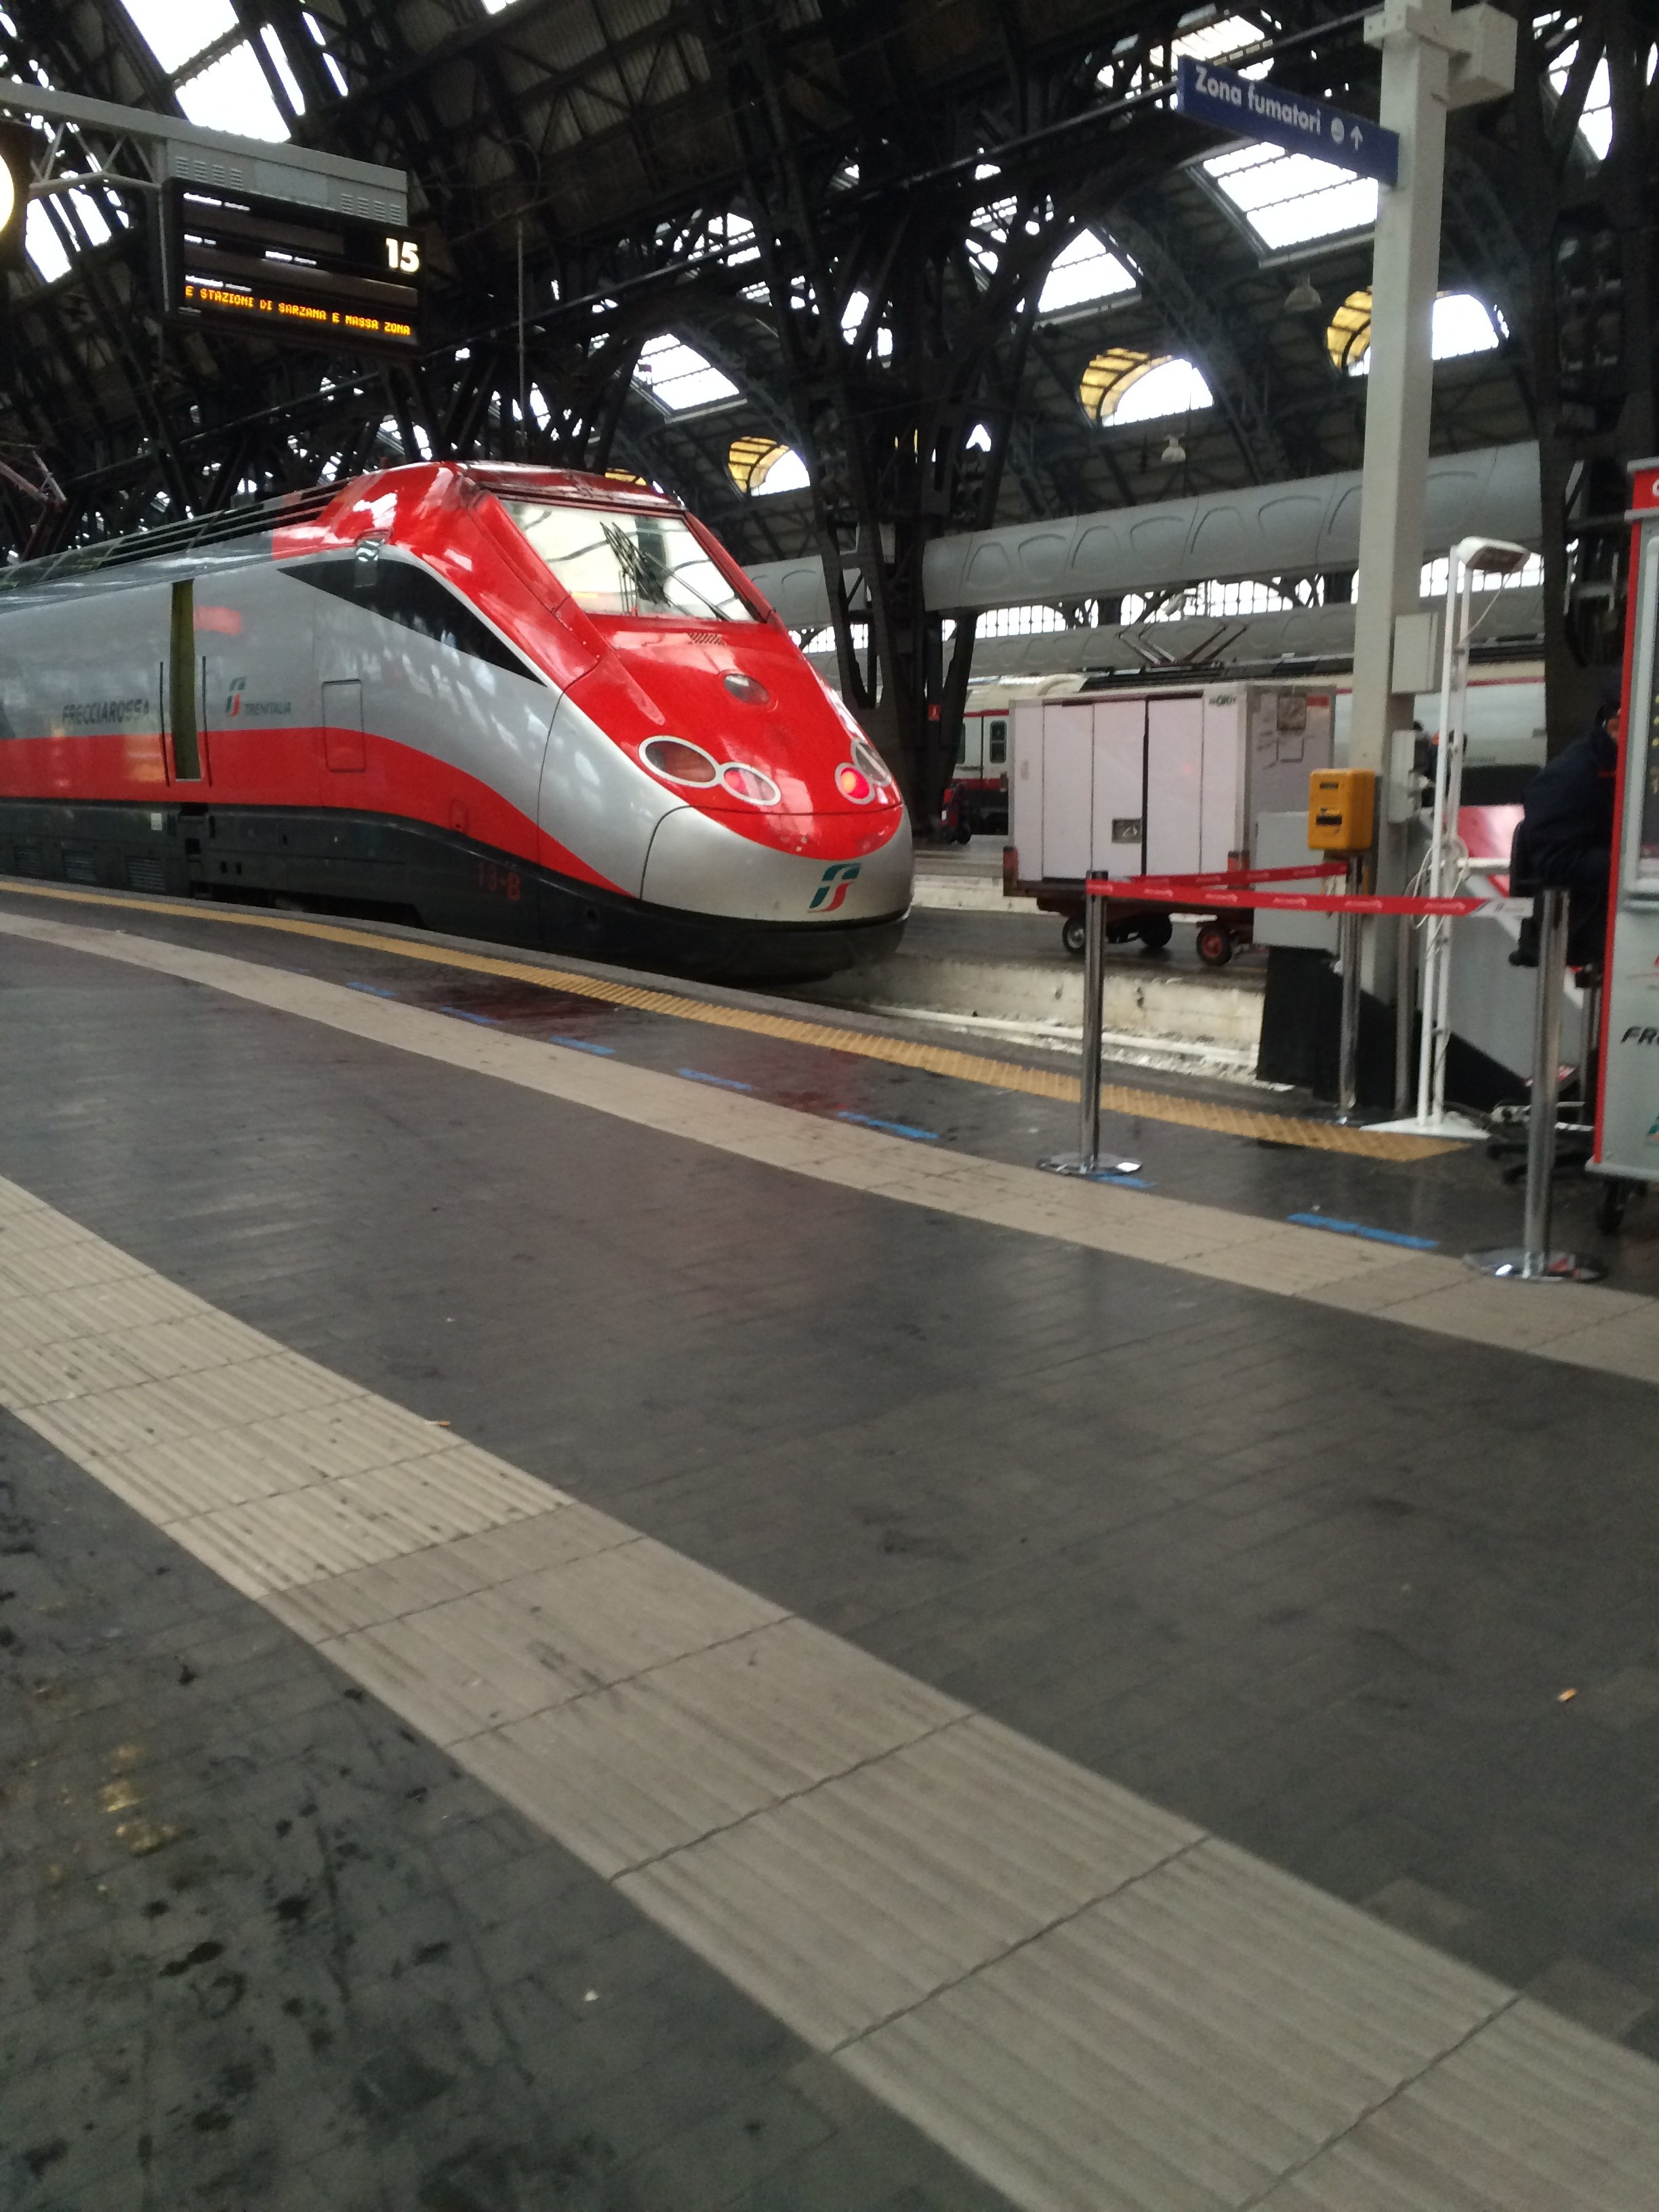 visit italy by train freccia rossa milan